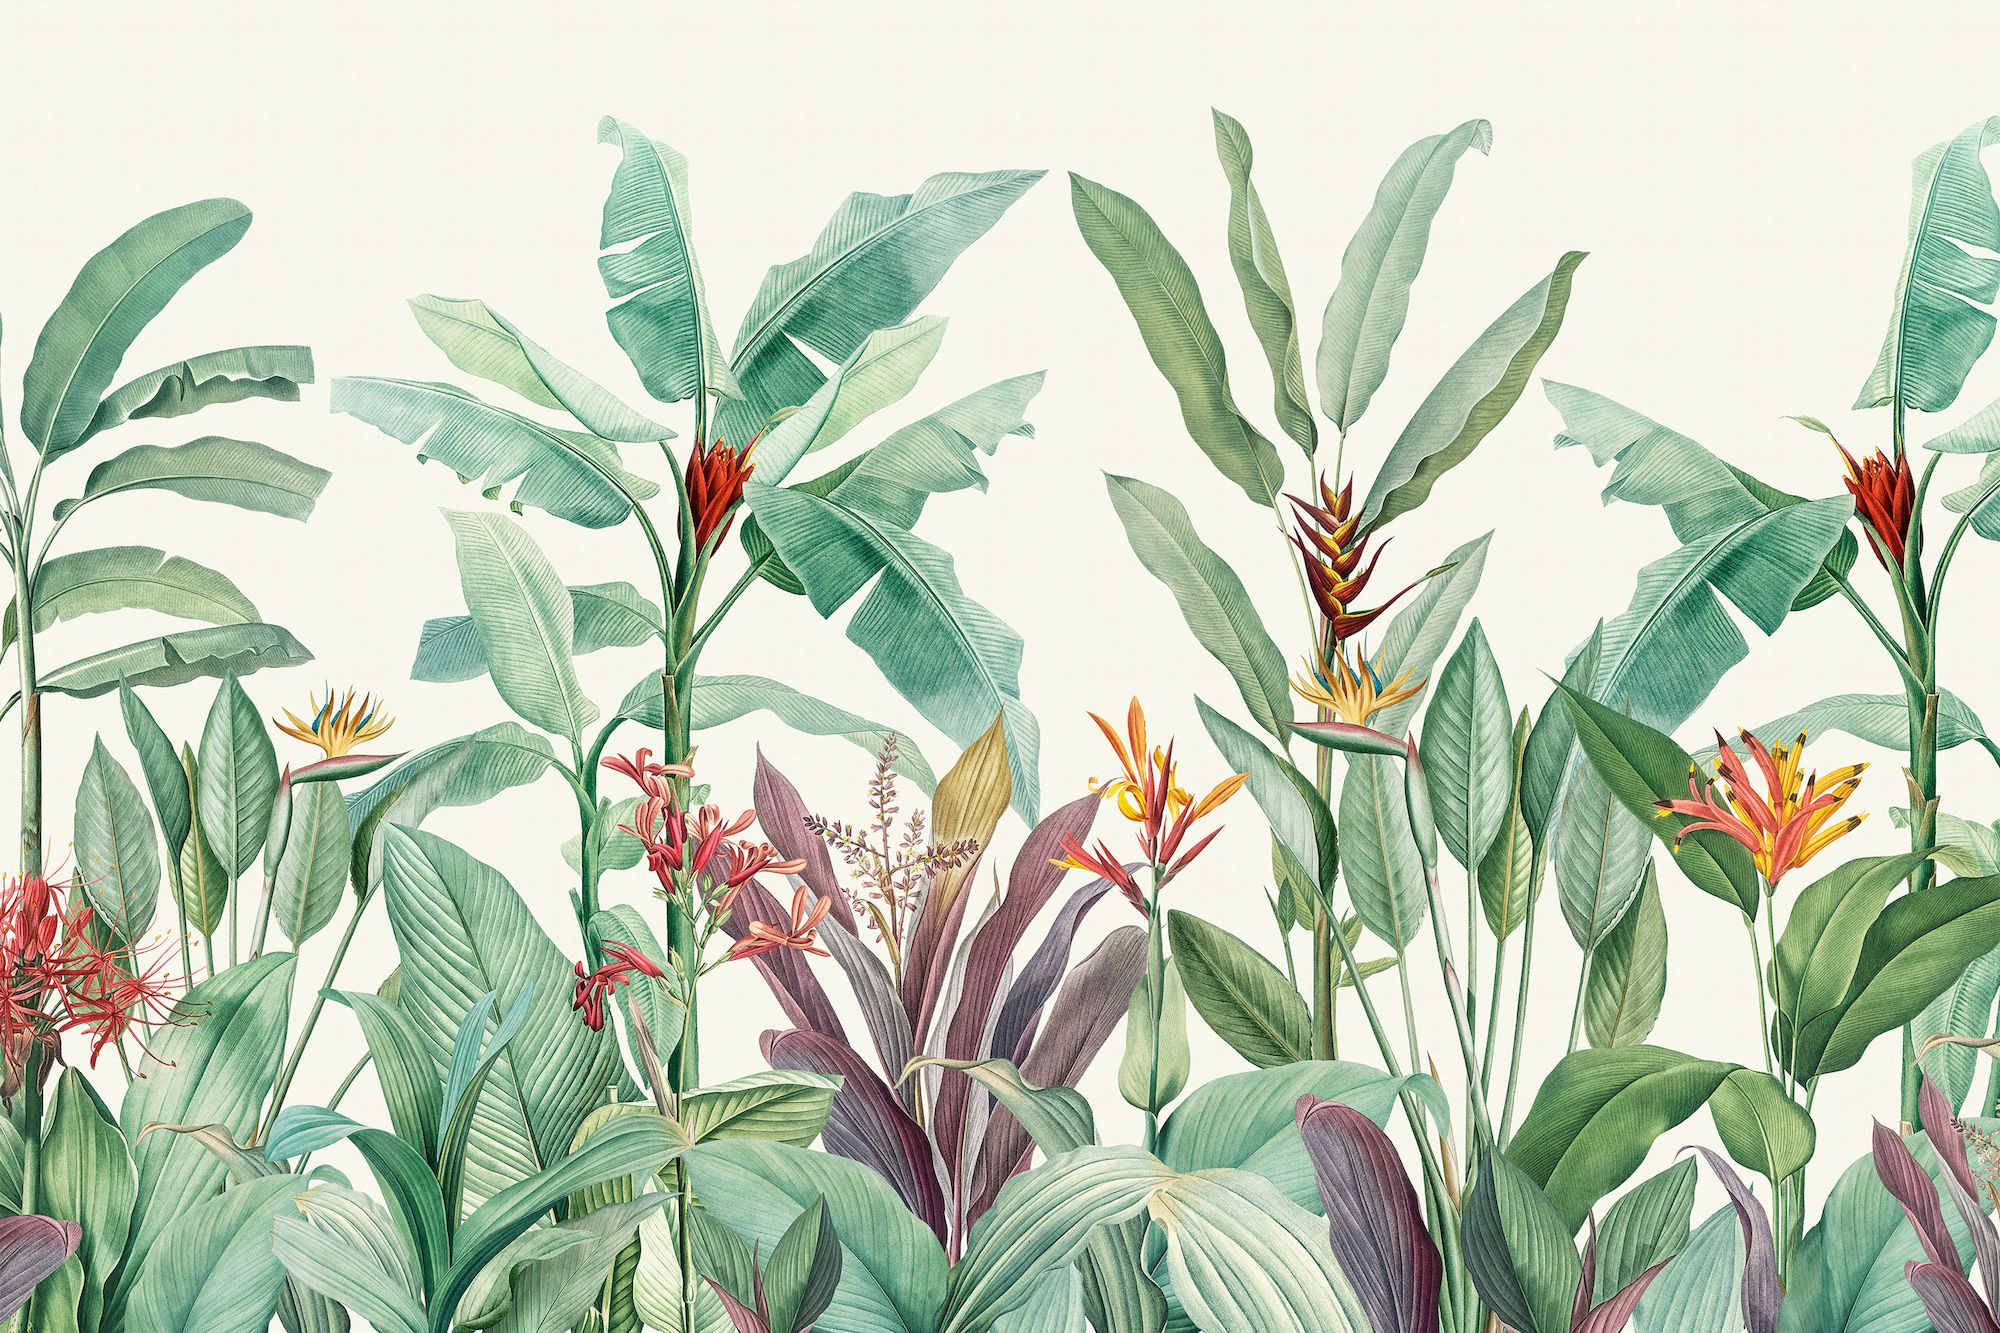 These beautiful wall murals are inspired by the botanical illustrations of Pierre-Joseph Redouté